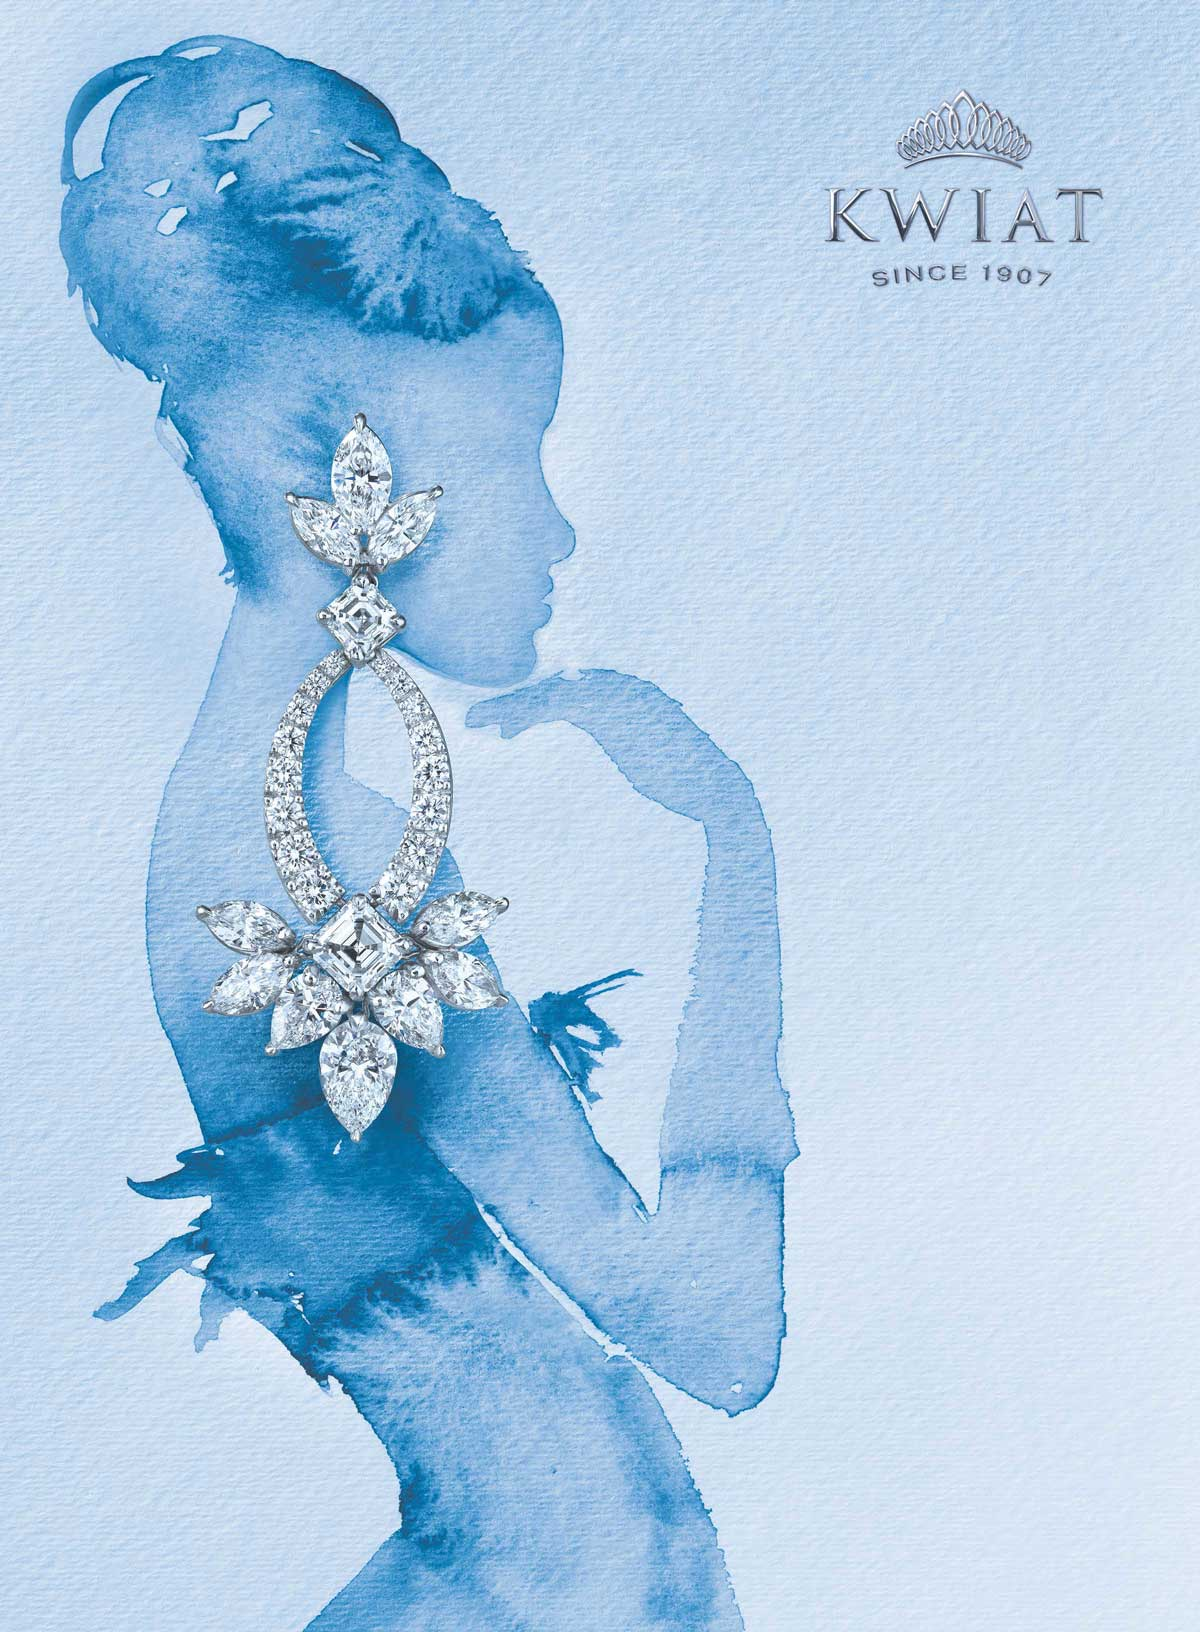 Watercolor Painting Advertising Campaignfor Luxury Fine Jewelry Brand, Kwiat. Includes Embossed and Engraved Logo Design by Benard Creative.